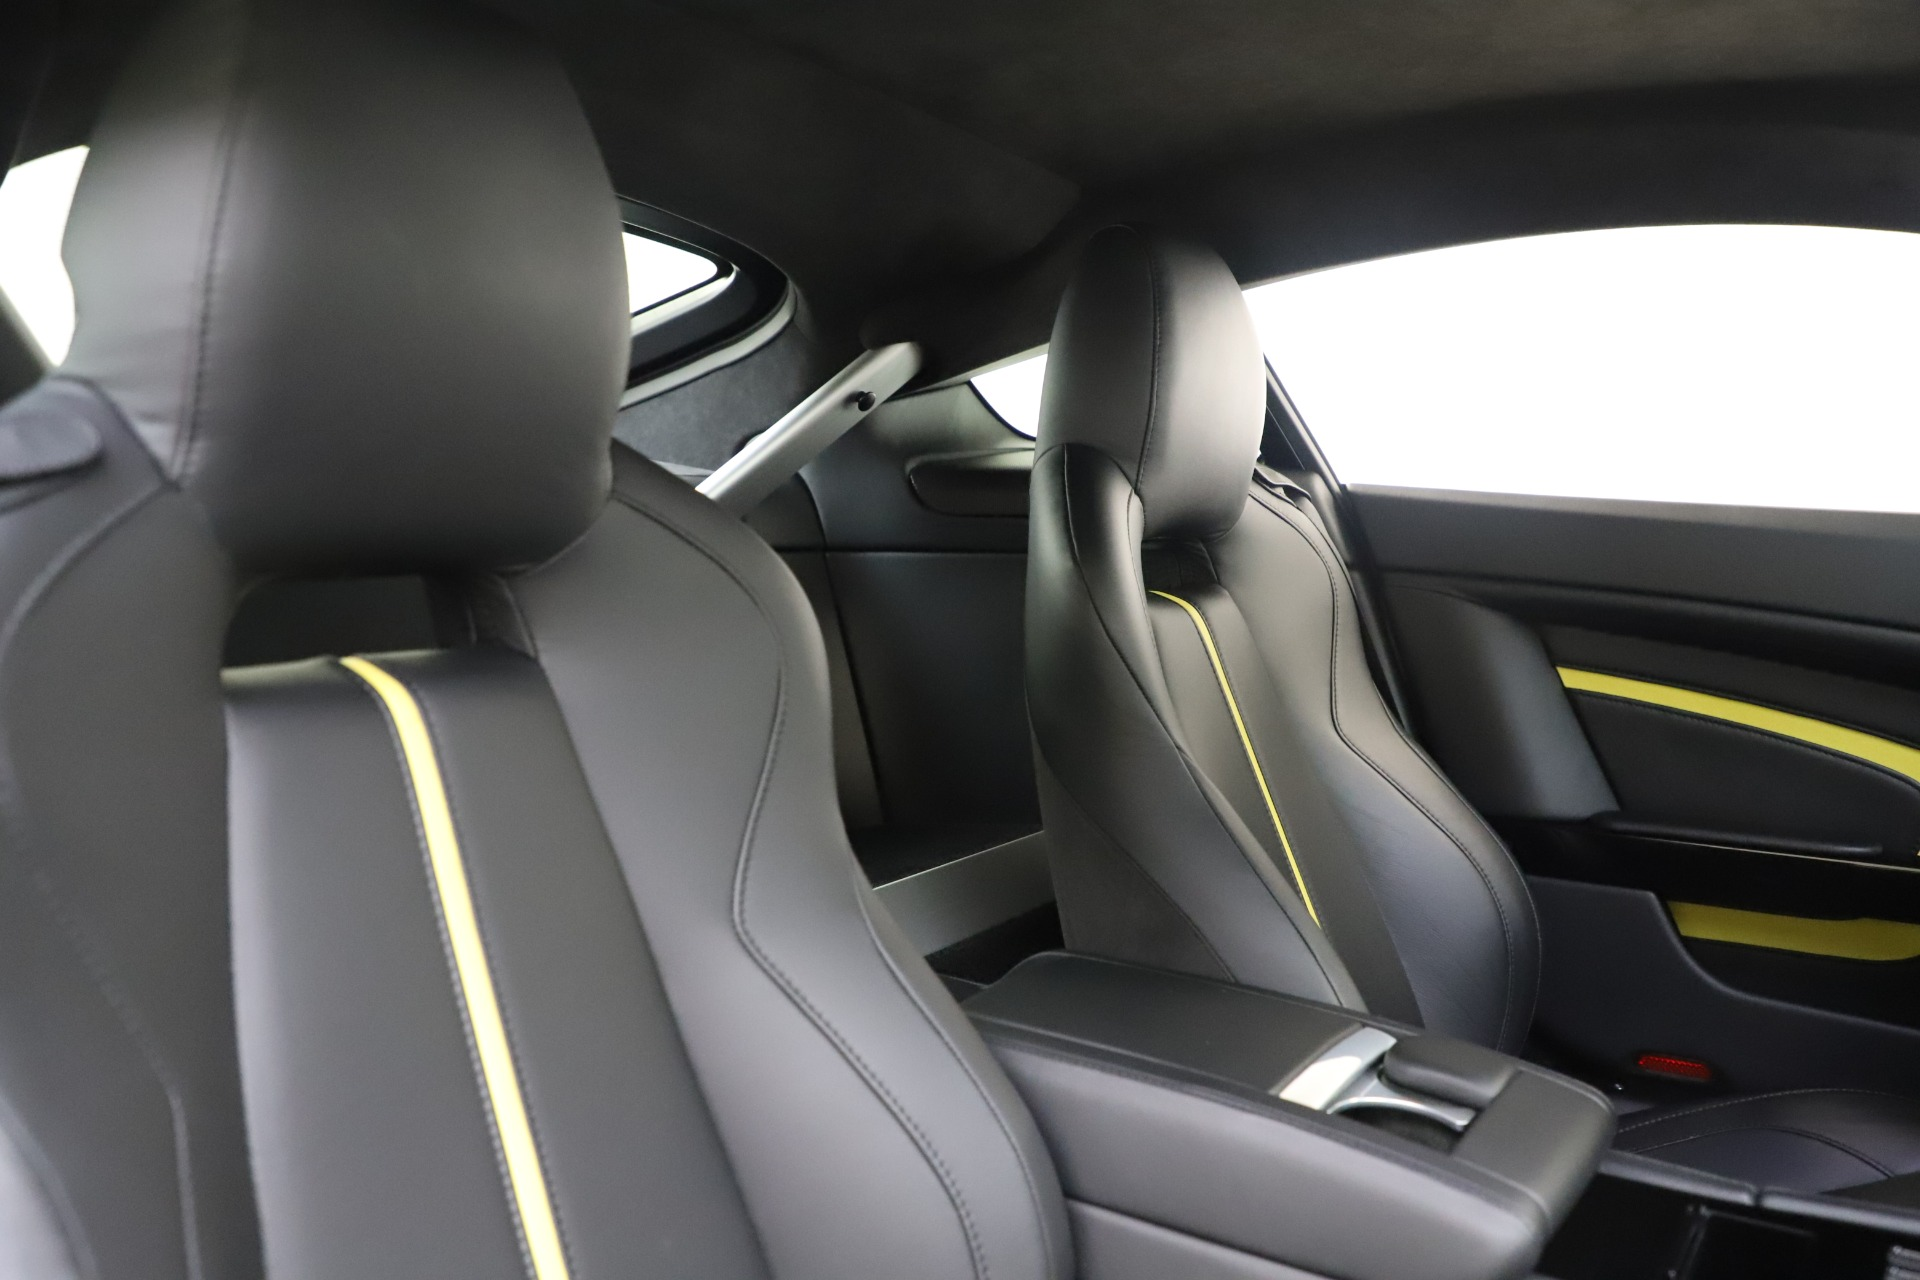 Used 2015 Aston Martin V12 Vantage S Coupe For Sale In Greenwich, CT 3513_p17